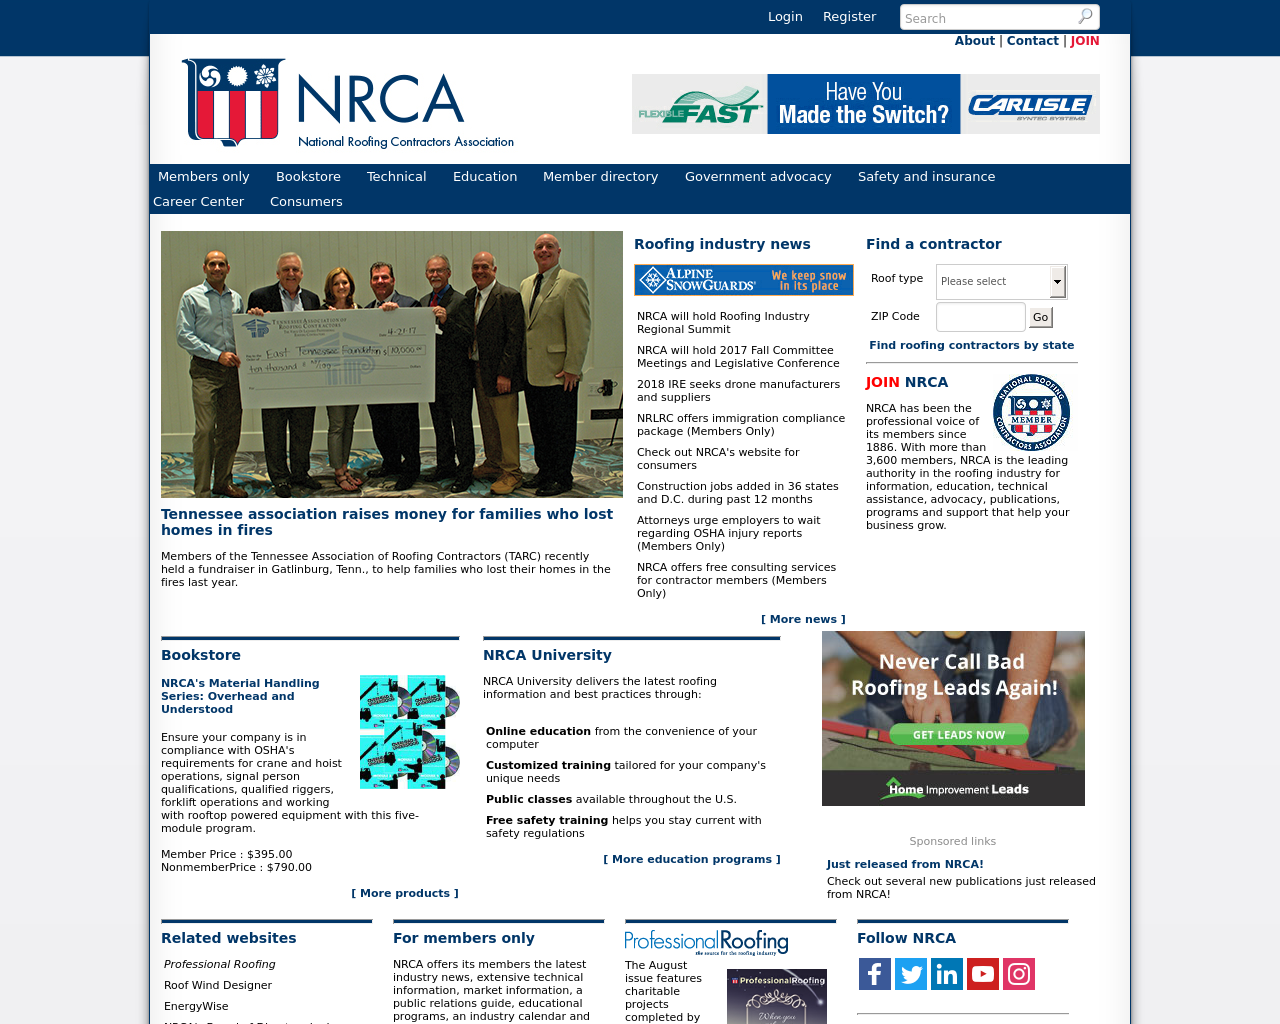 National-Roofing-Contractors-Association-Advertising-Reviews-Pricing